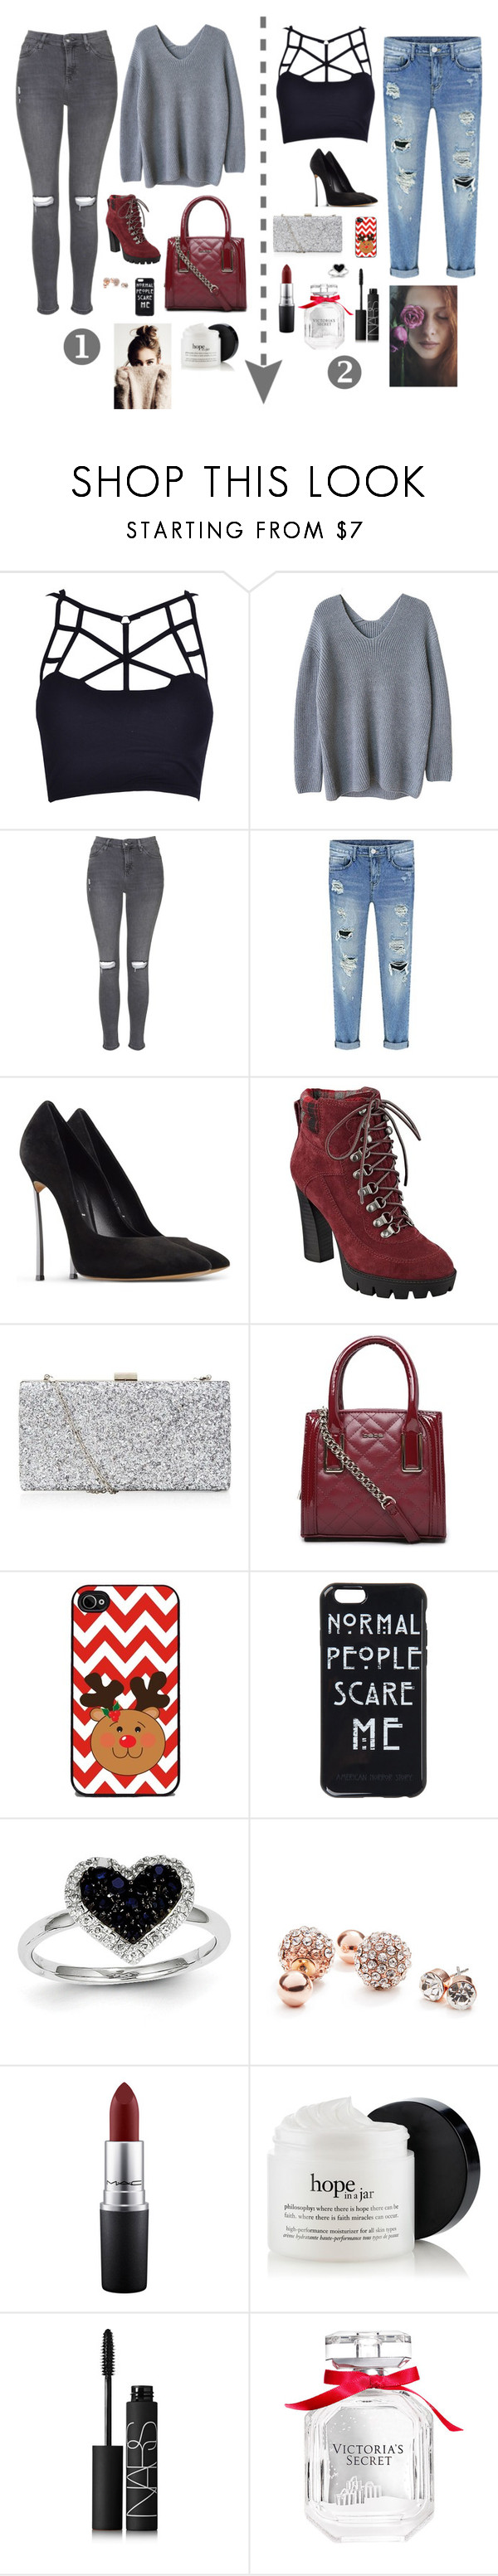 """""""1 or 2??"""" by sofiy112 ❤ liked on Polyvore featuring Topshop, Casadei, Nine West, Bebe, Kevin Jewelers, GUESS, MAC Cosmetics, NARS Cosmetics and Victoria's Secret"""